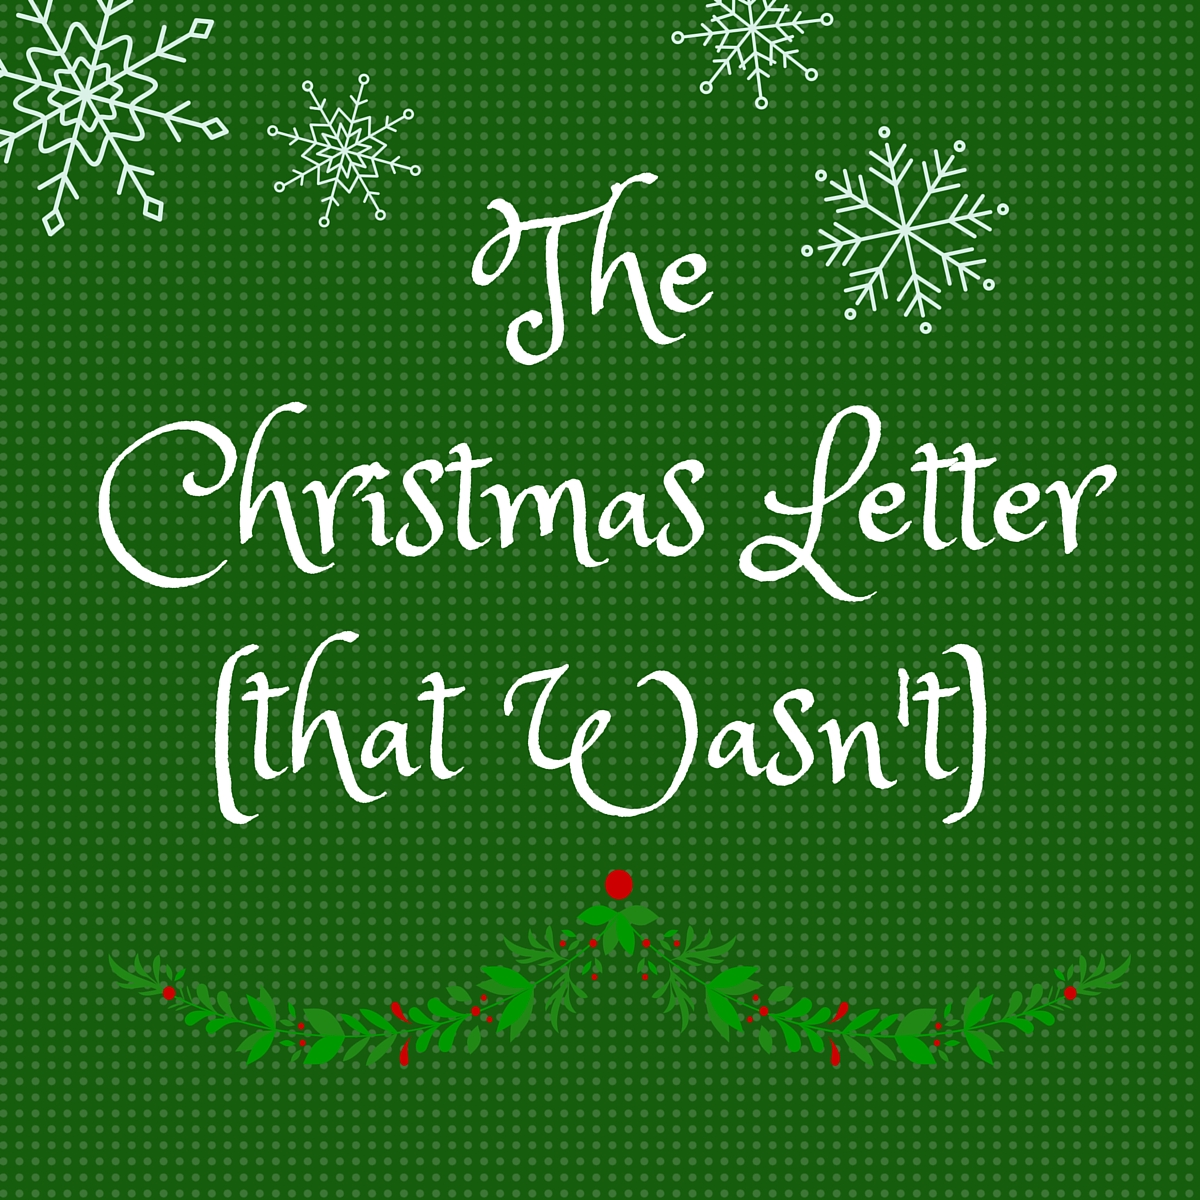 The Christmas Letter(that Wasn't)